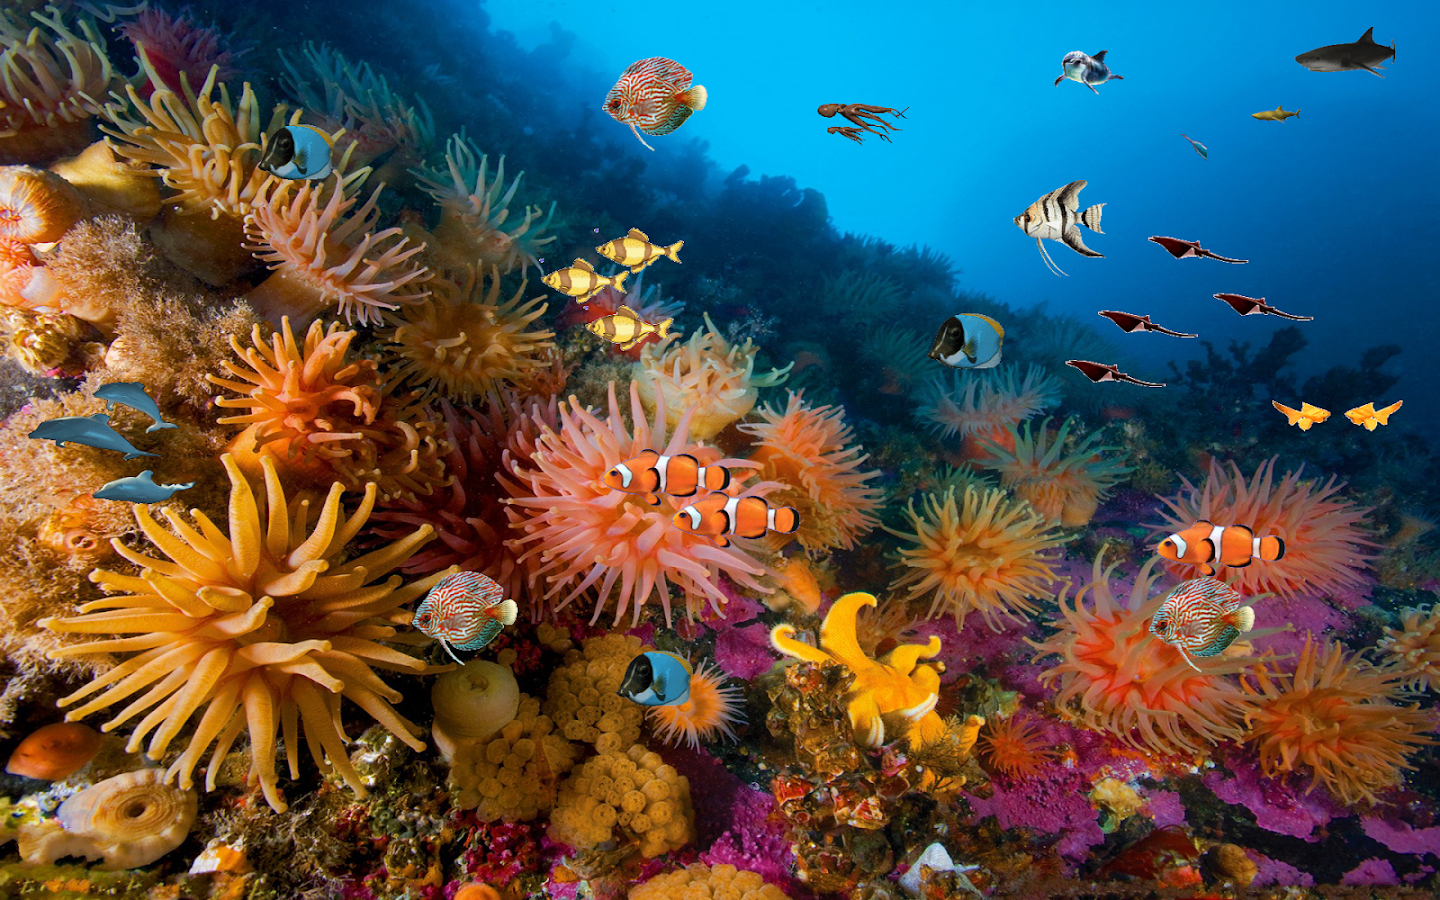 Coral reef free live wallpaper android apps on google play - Sea coral wallpaper ...